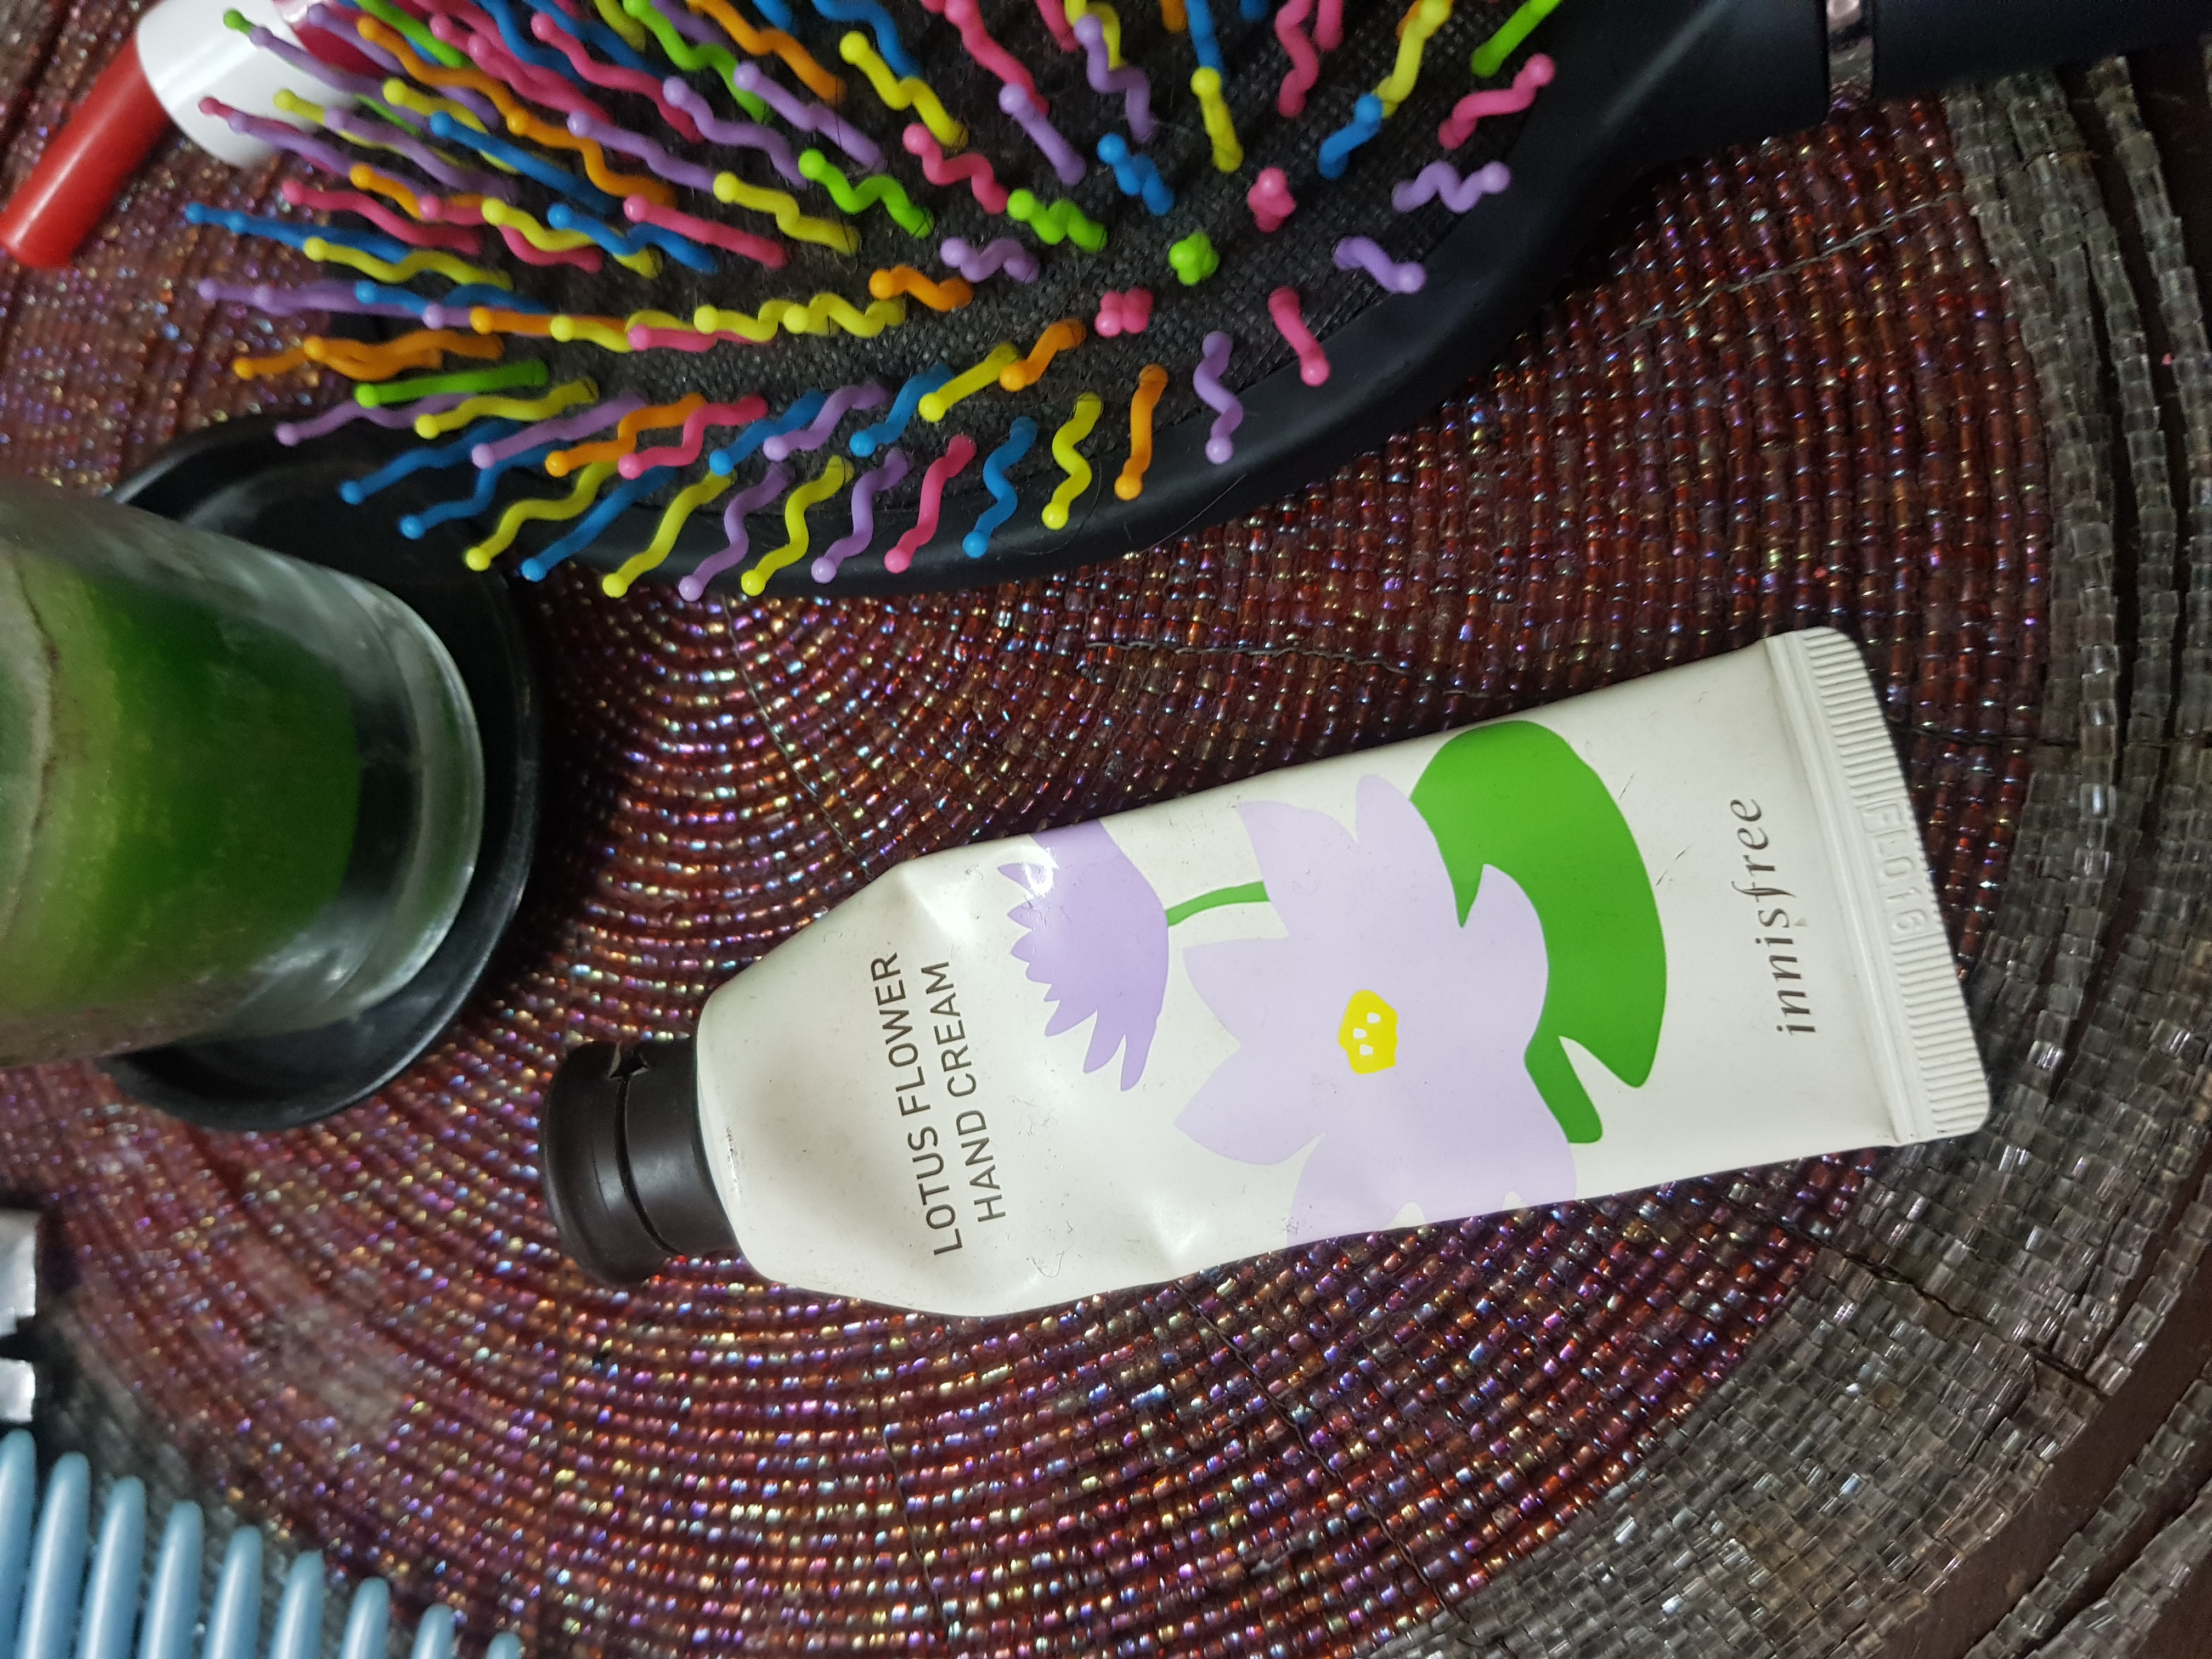 innisfree Jeju Life Perfumed Hand Cream-Perfect for Hand care!-By poonam_kakkar